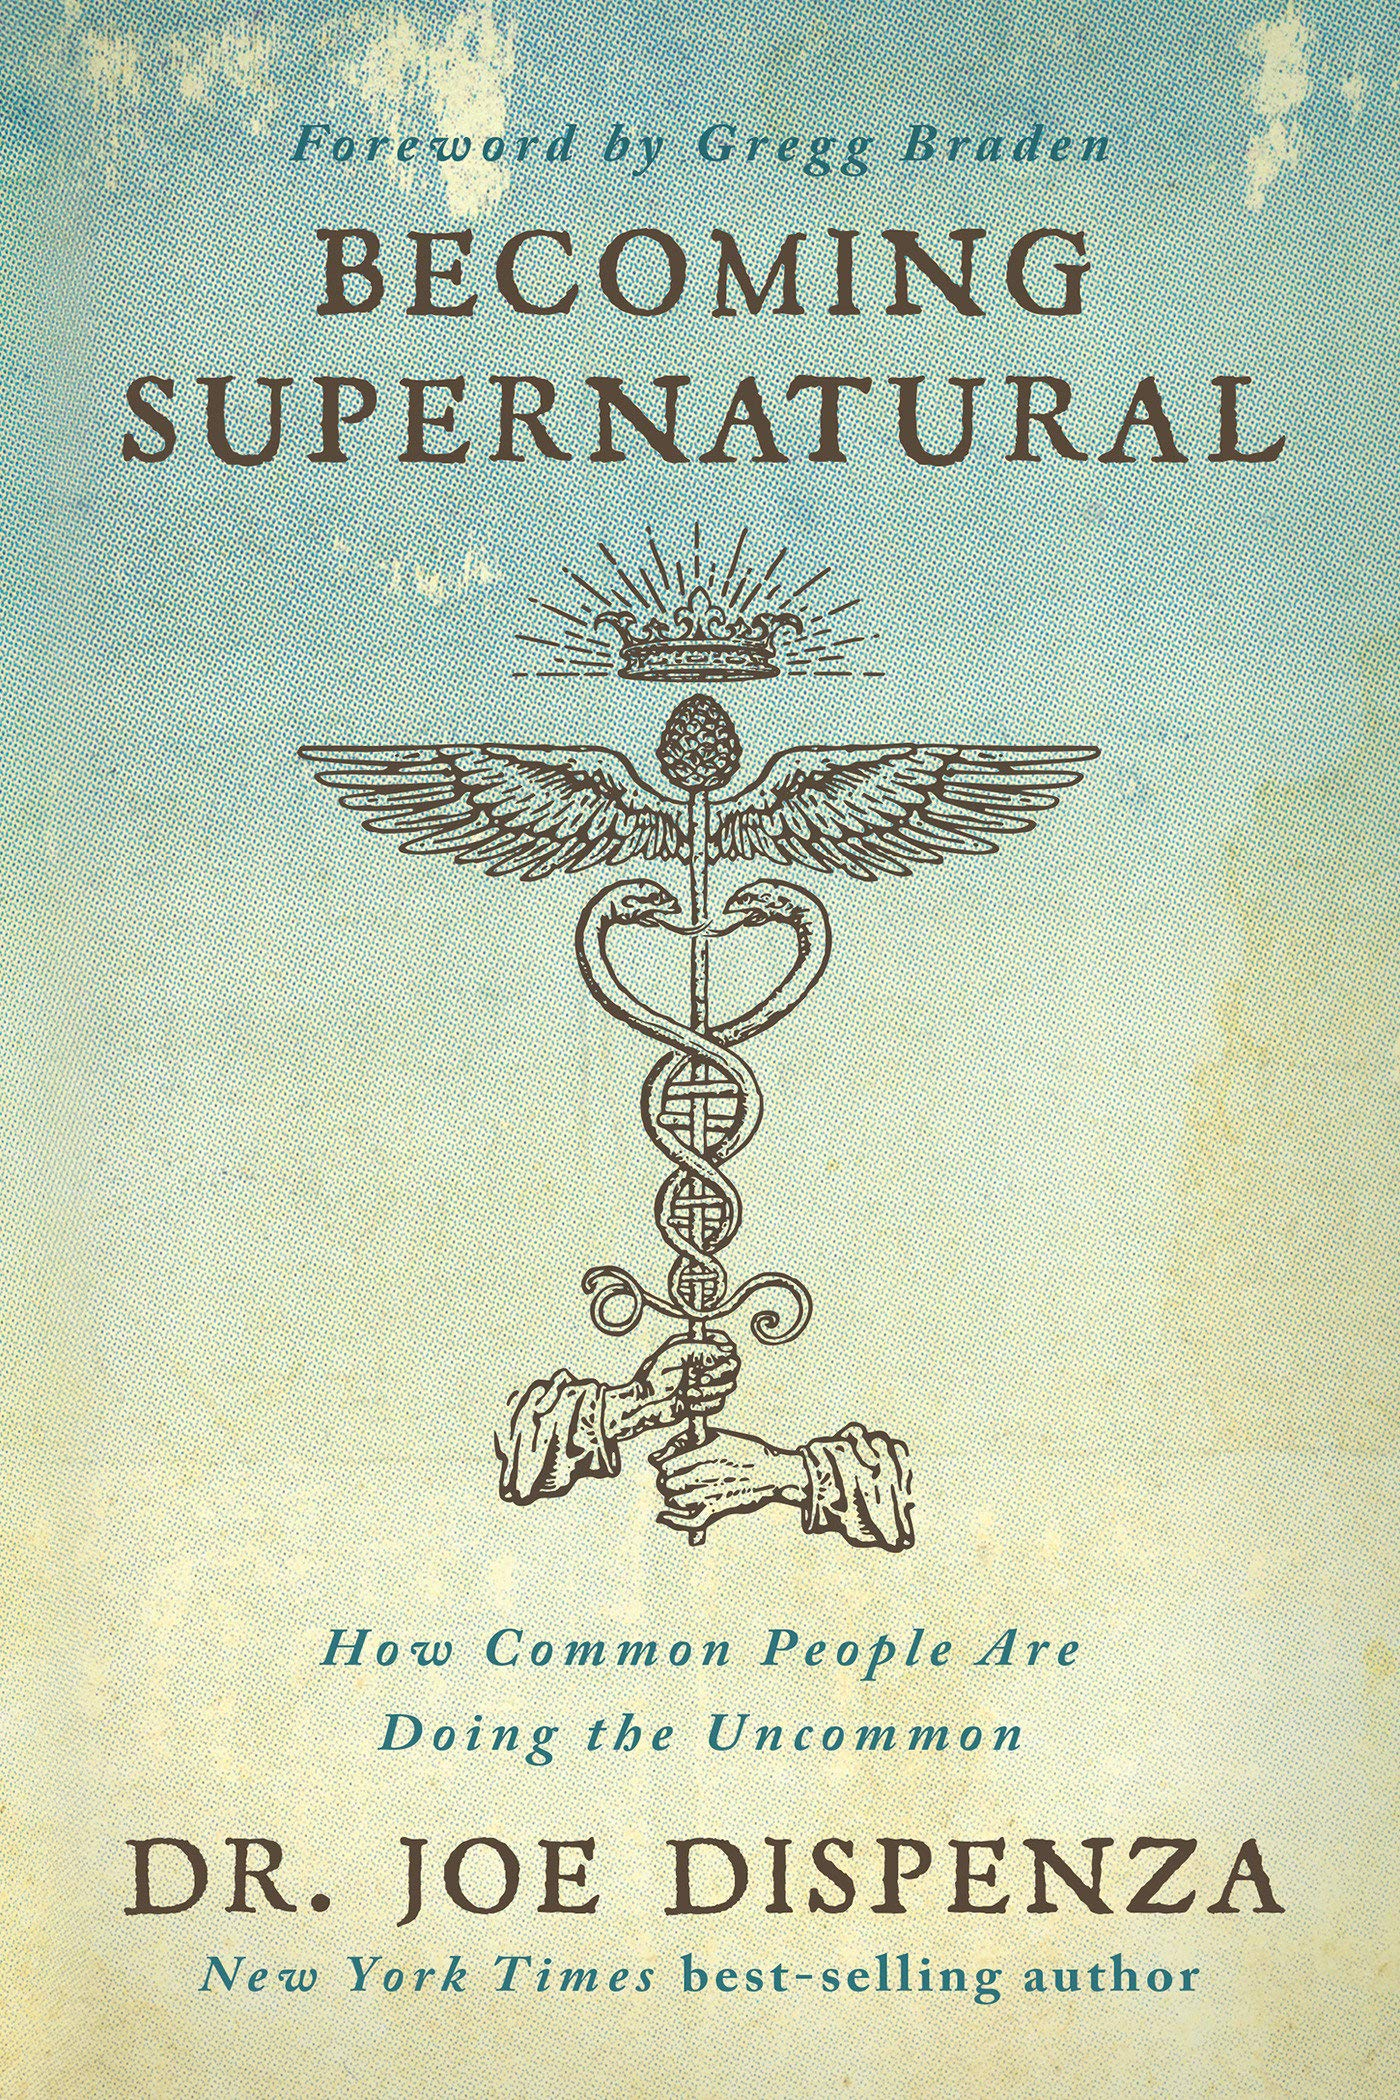 Becoming Supernatural: How Common People Are Doing the Uncommon by Hay House Inc.